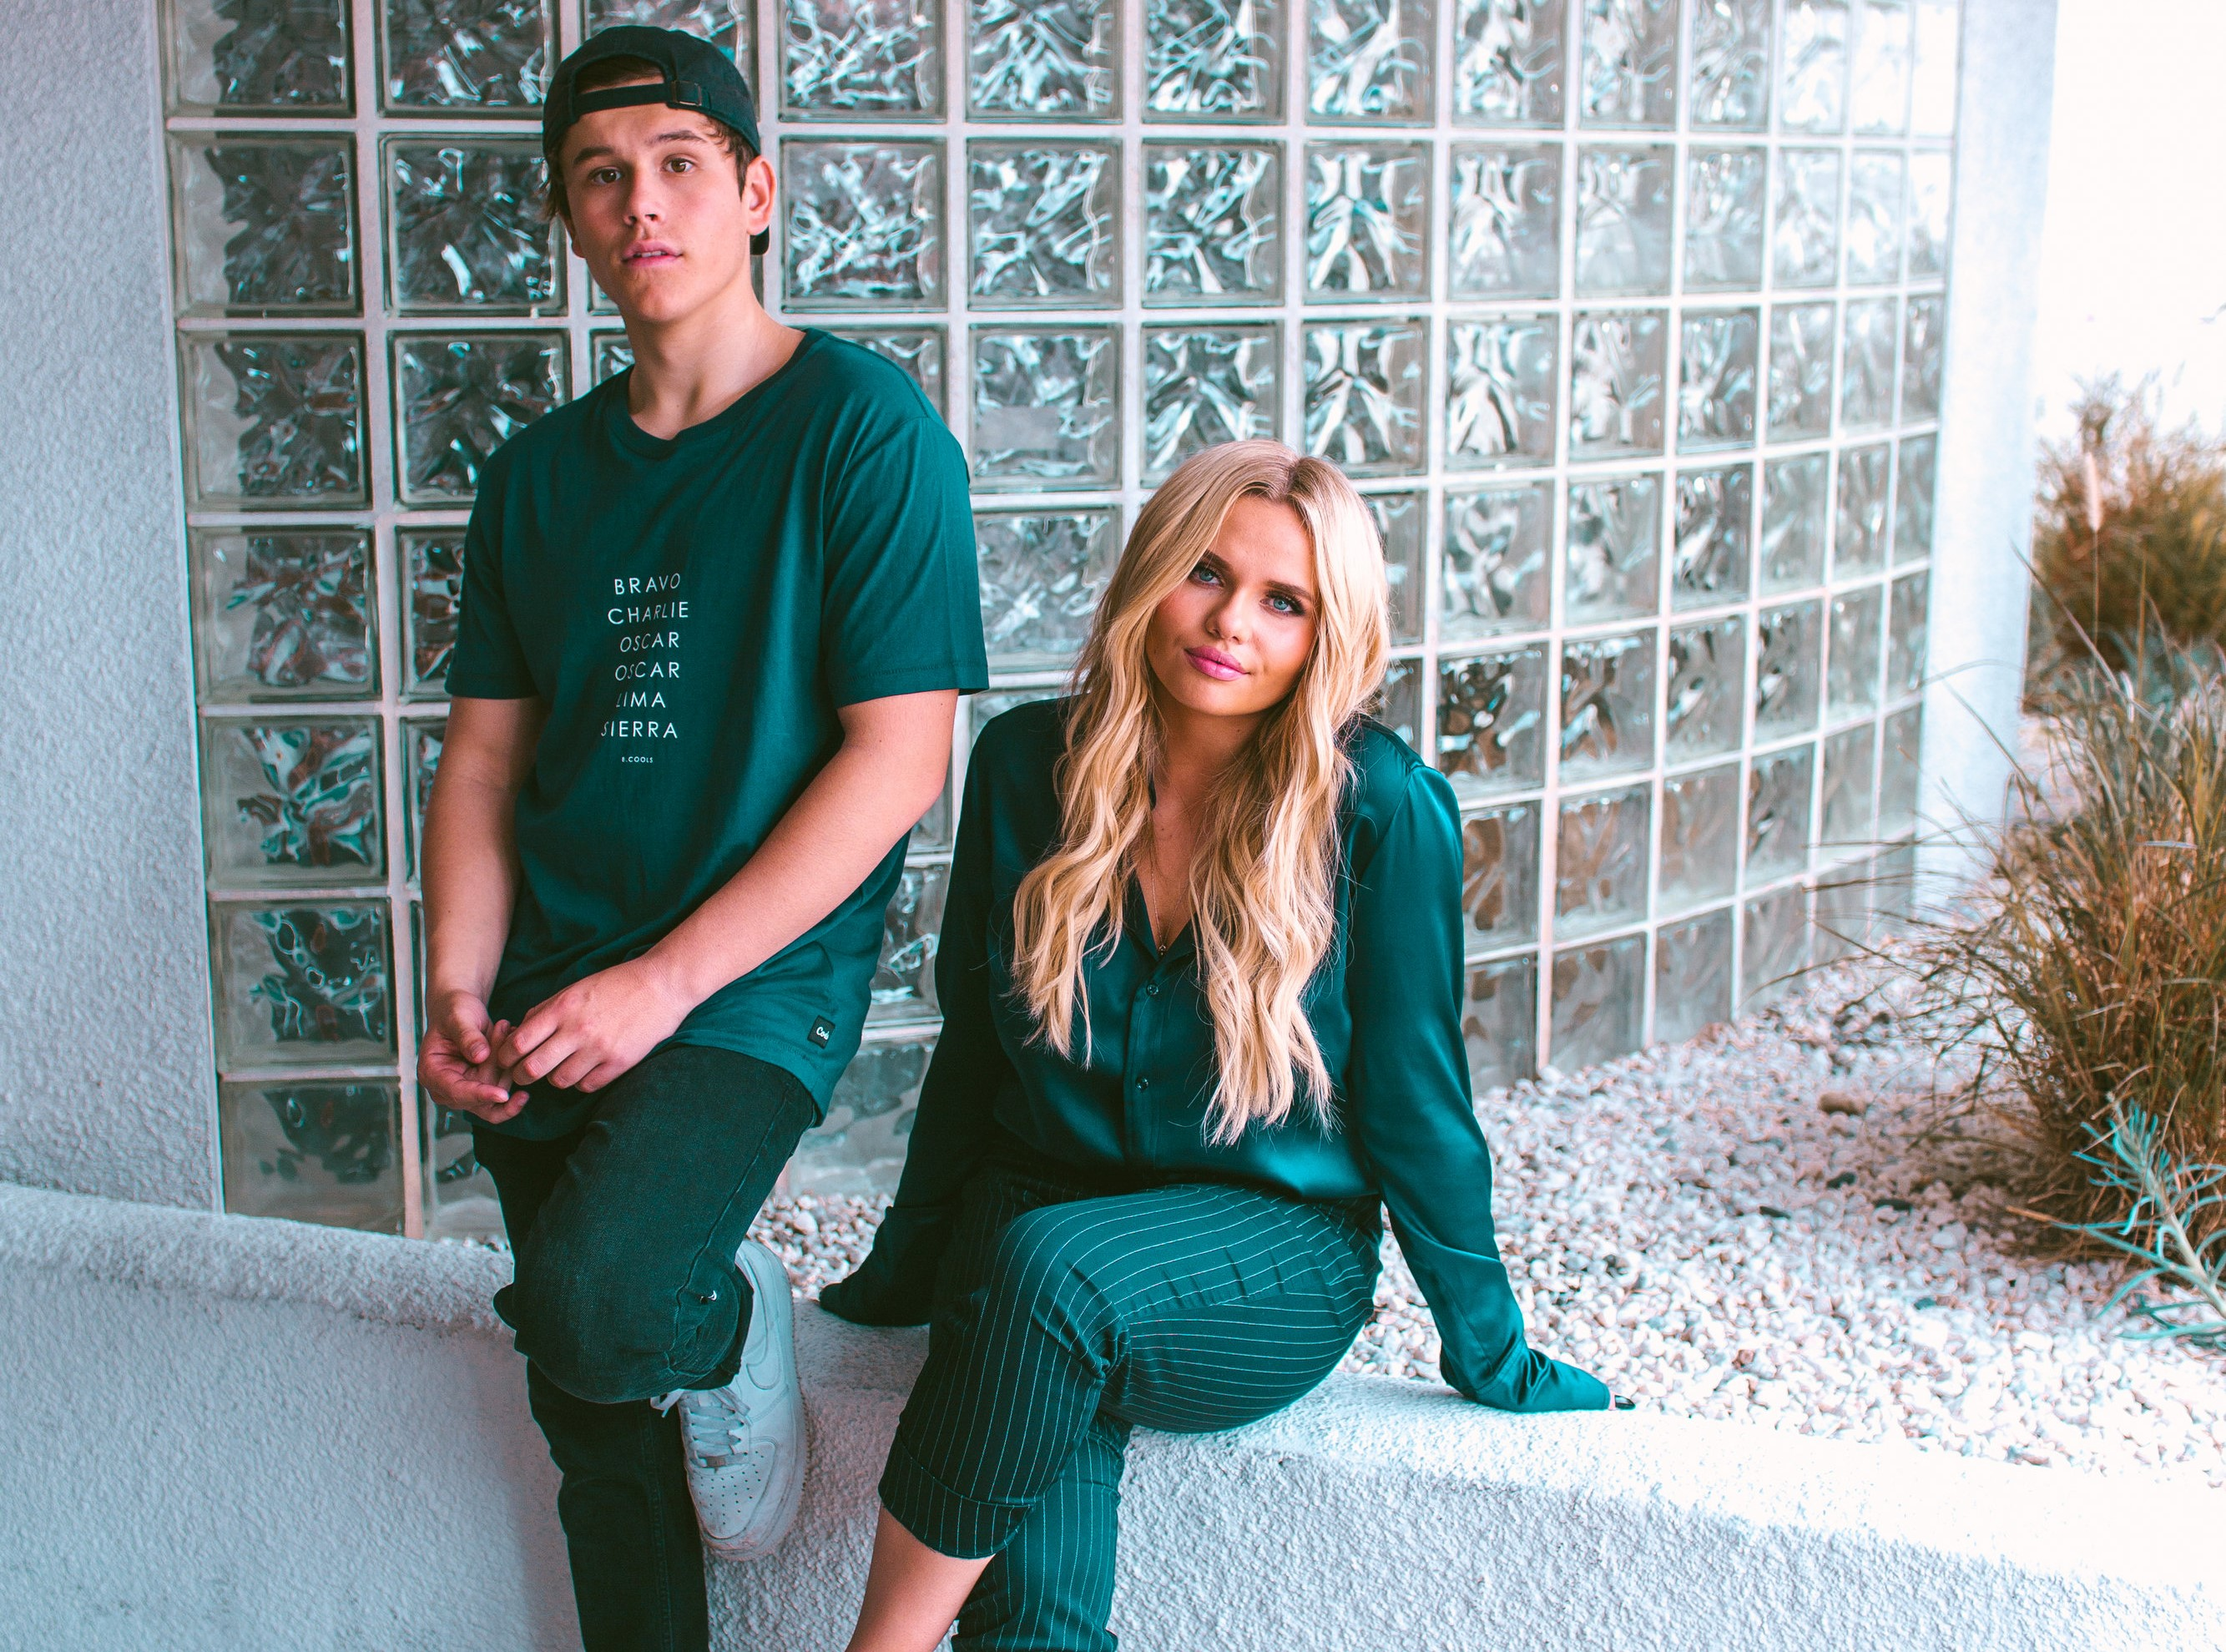 JAI WAETFORD AND ALLI SIMPSON ANNOUNCED AS HOSTS OF THE SHARESPACE!